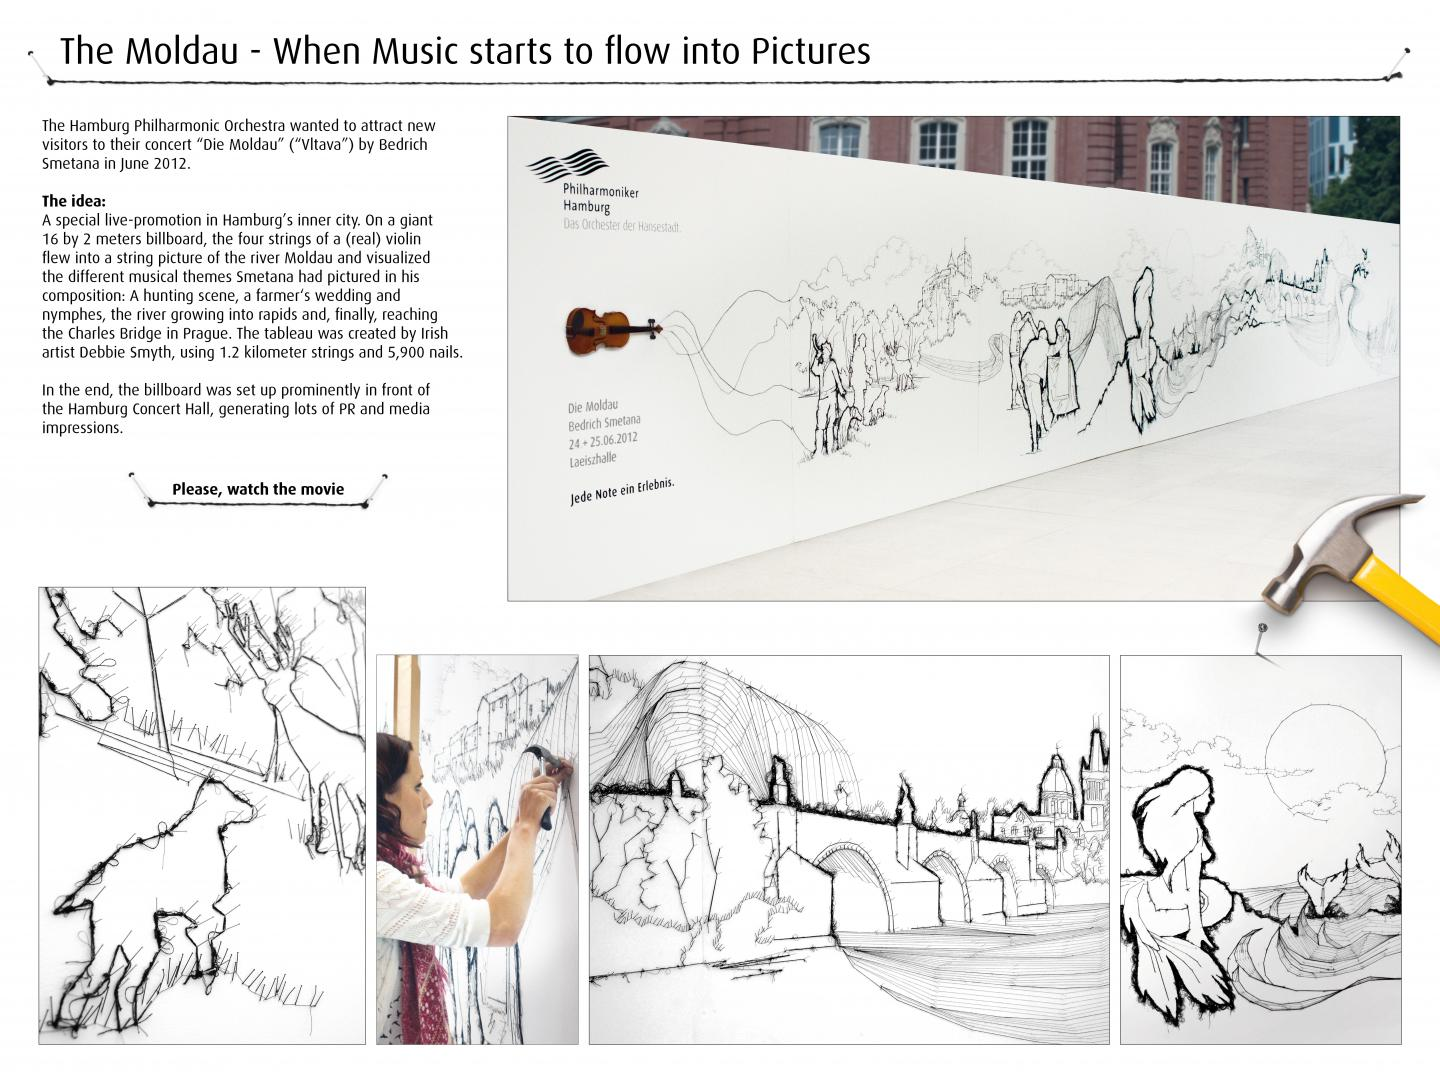 PHILHARMONIKER - WHEN MUSIC FLOWS INTO PICTURES Thumbnail